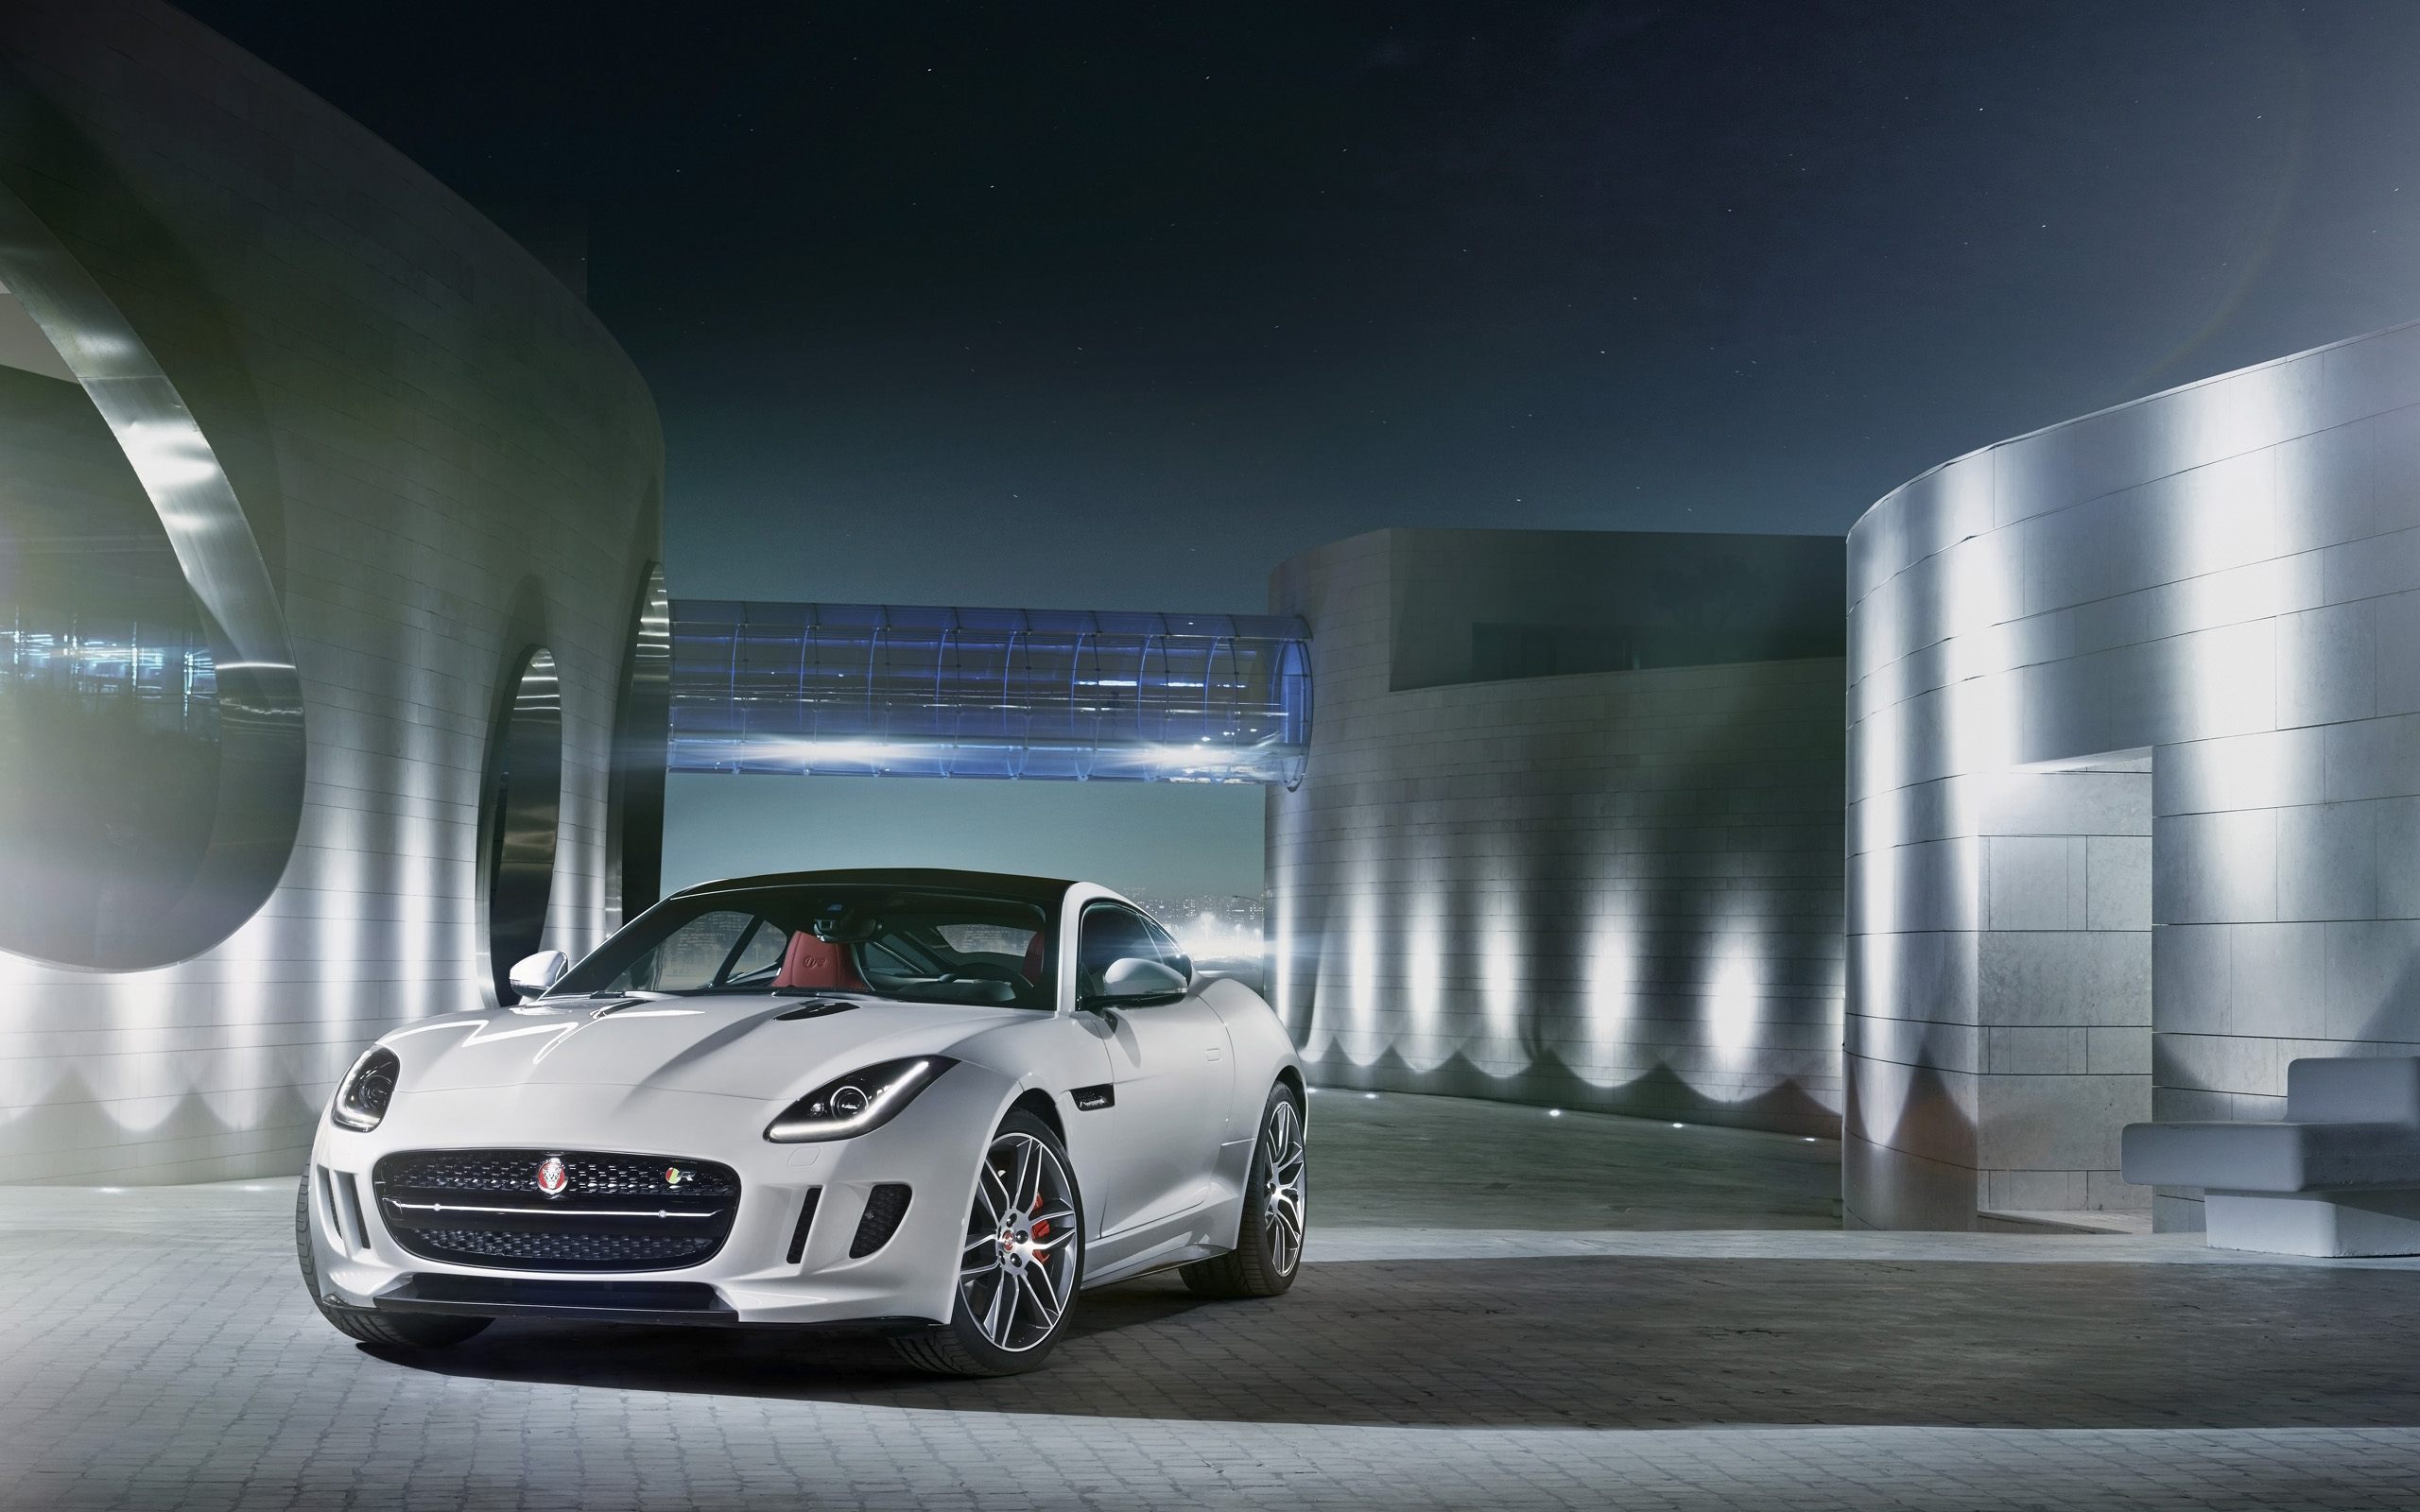 2560x1600 2014 Jaguar F-Type R Coupe Polaris White Static Front Angle